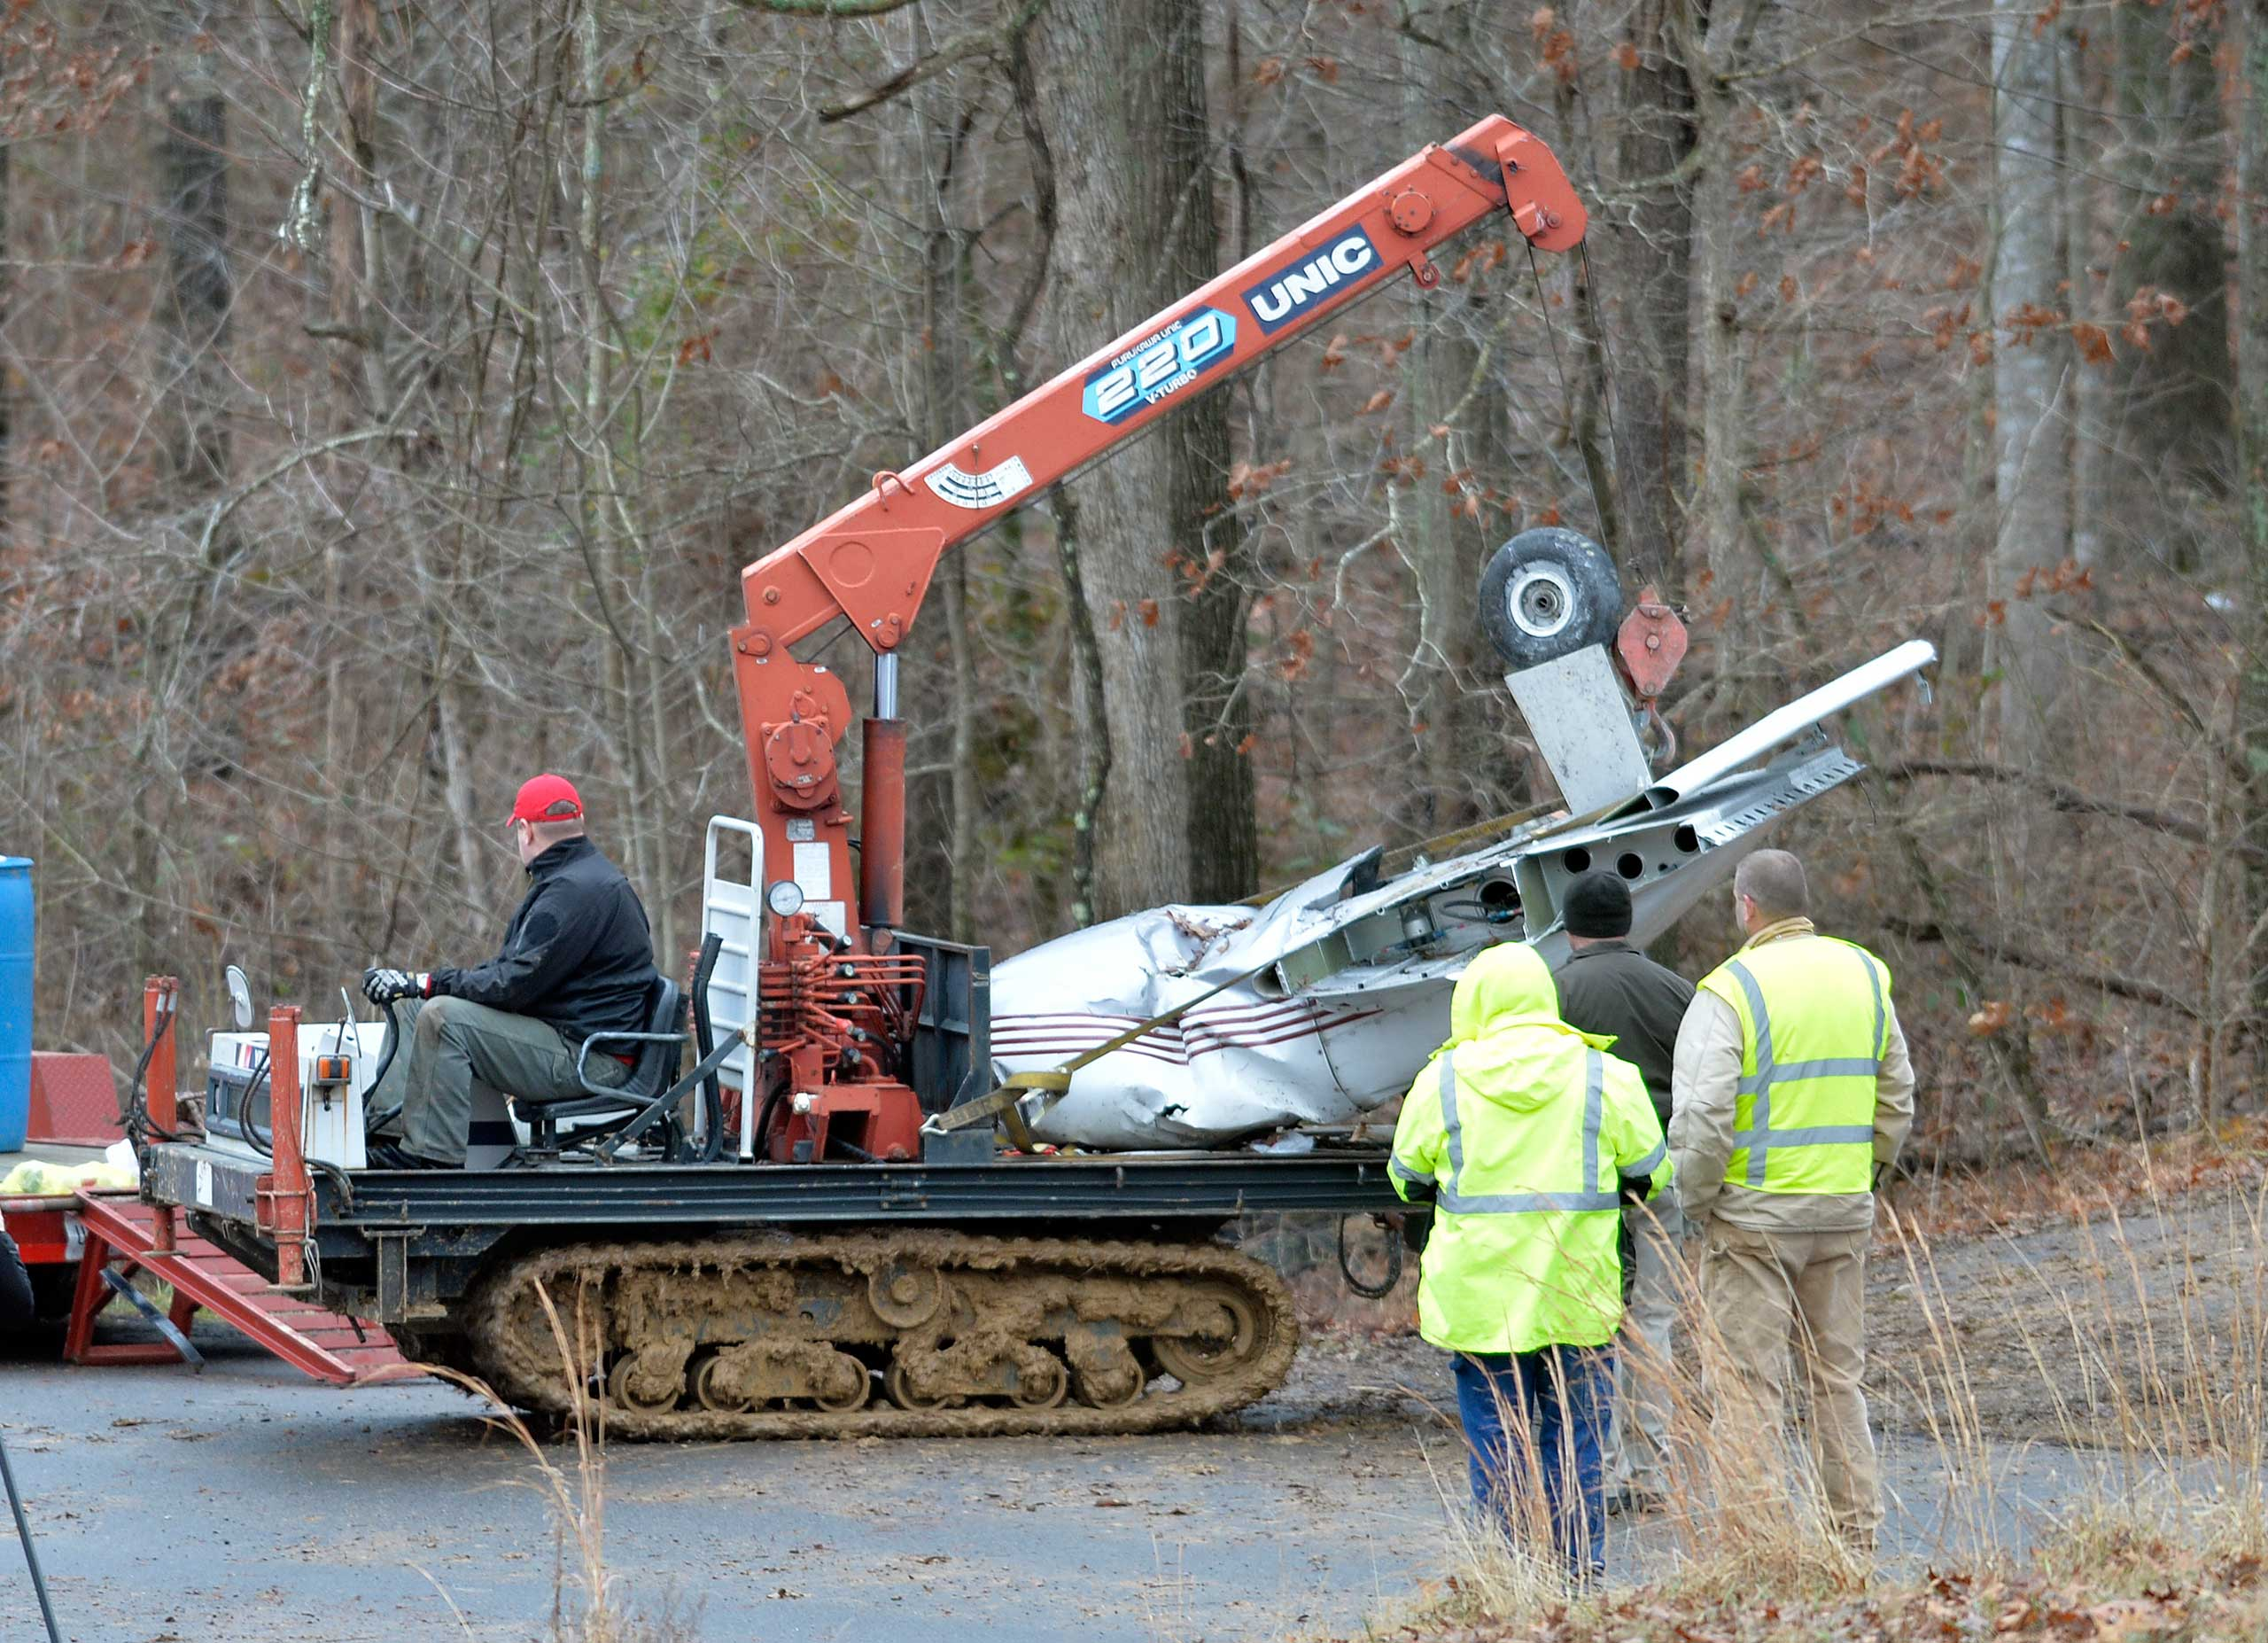 Salvage workers bring out part of a Piper PA-34's fuselage, wing, and landing gear from a crash site Jan. 4, 2015 in Kuttawa, Ky. Officials from the National Transportation Safety Board arrived at the crash site Sunday in Kentucky in which a 7-year-old girl survived and four of her family members were killed.